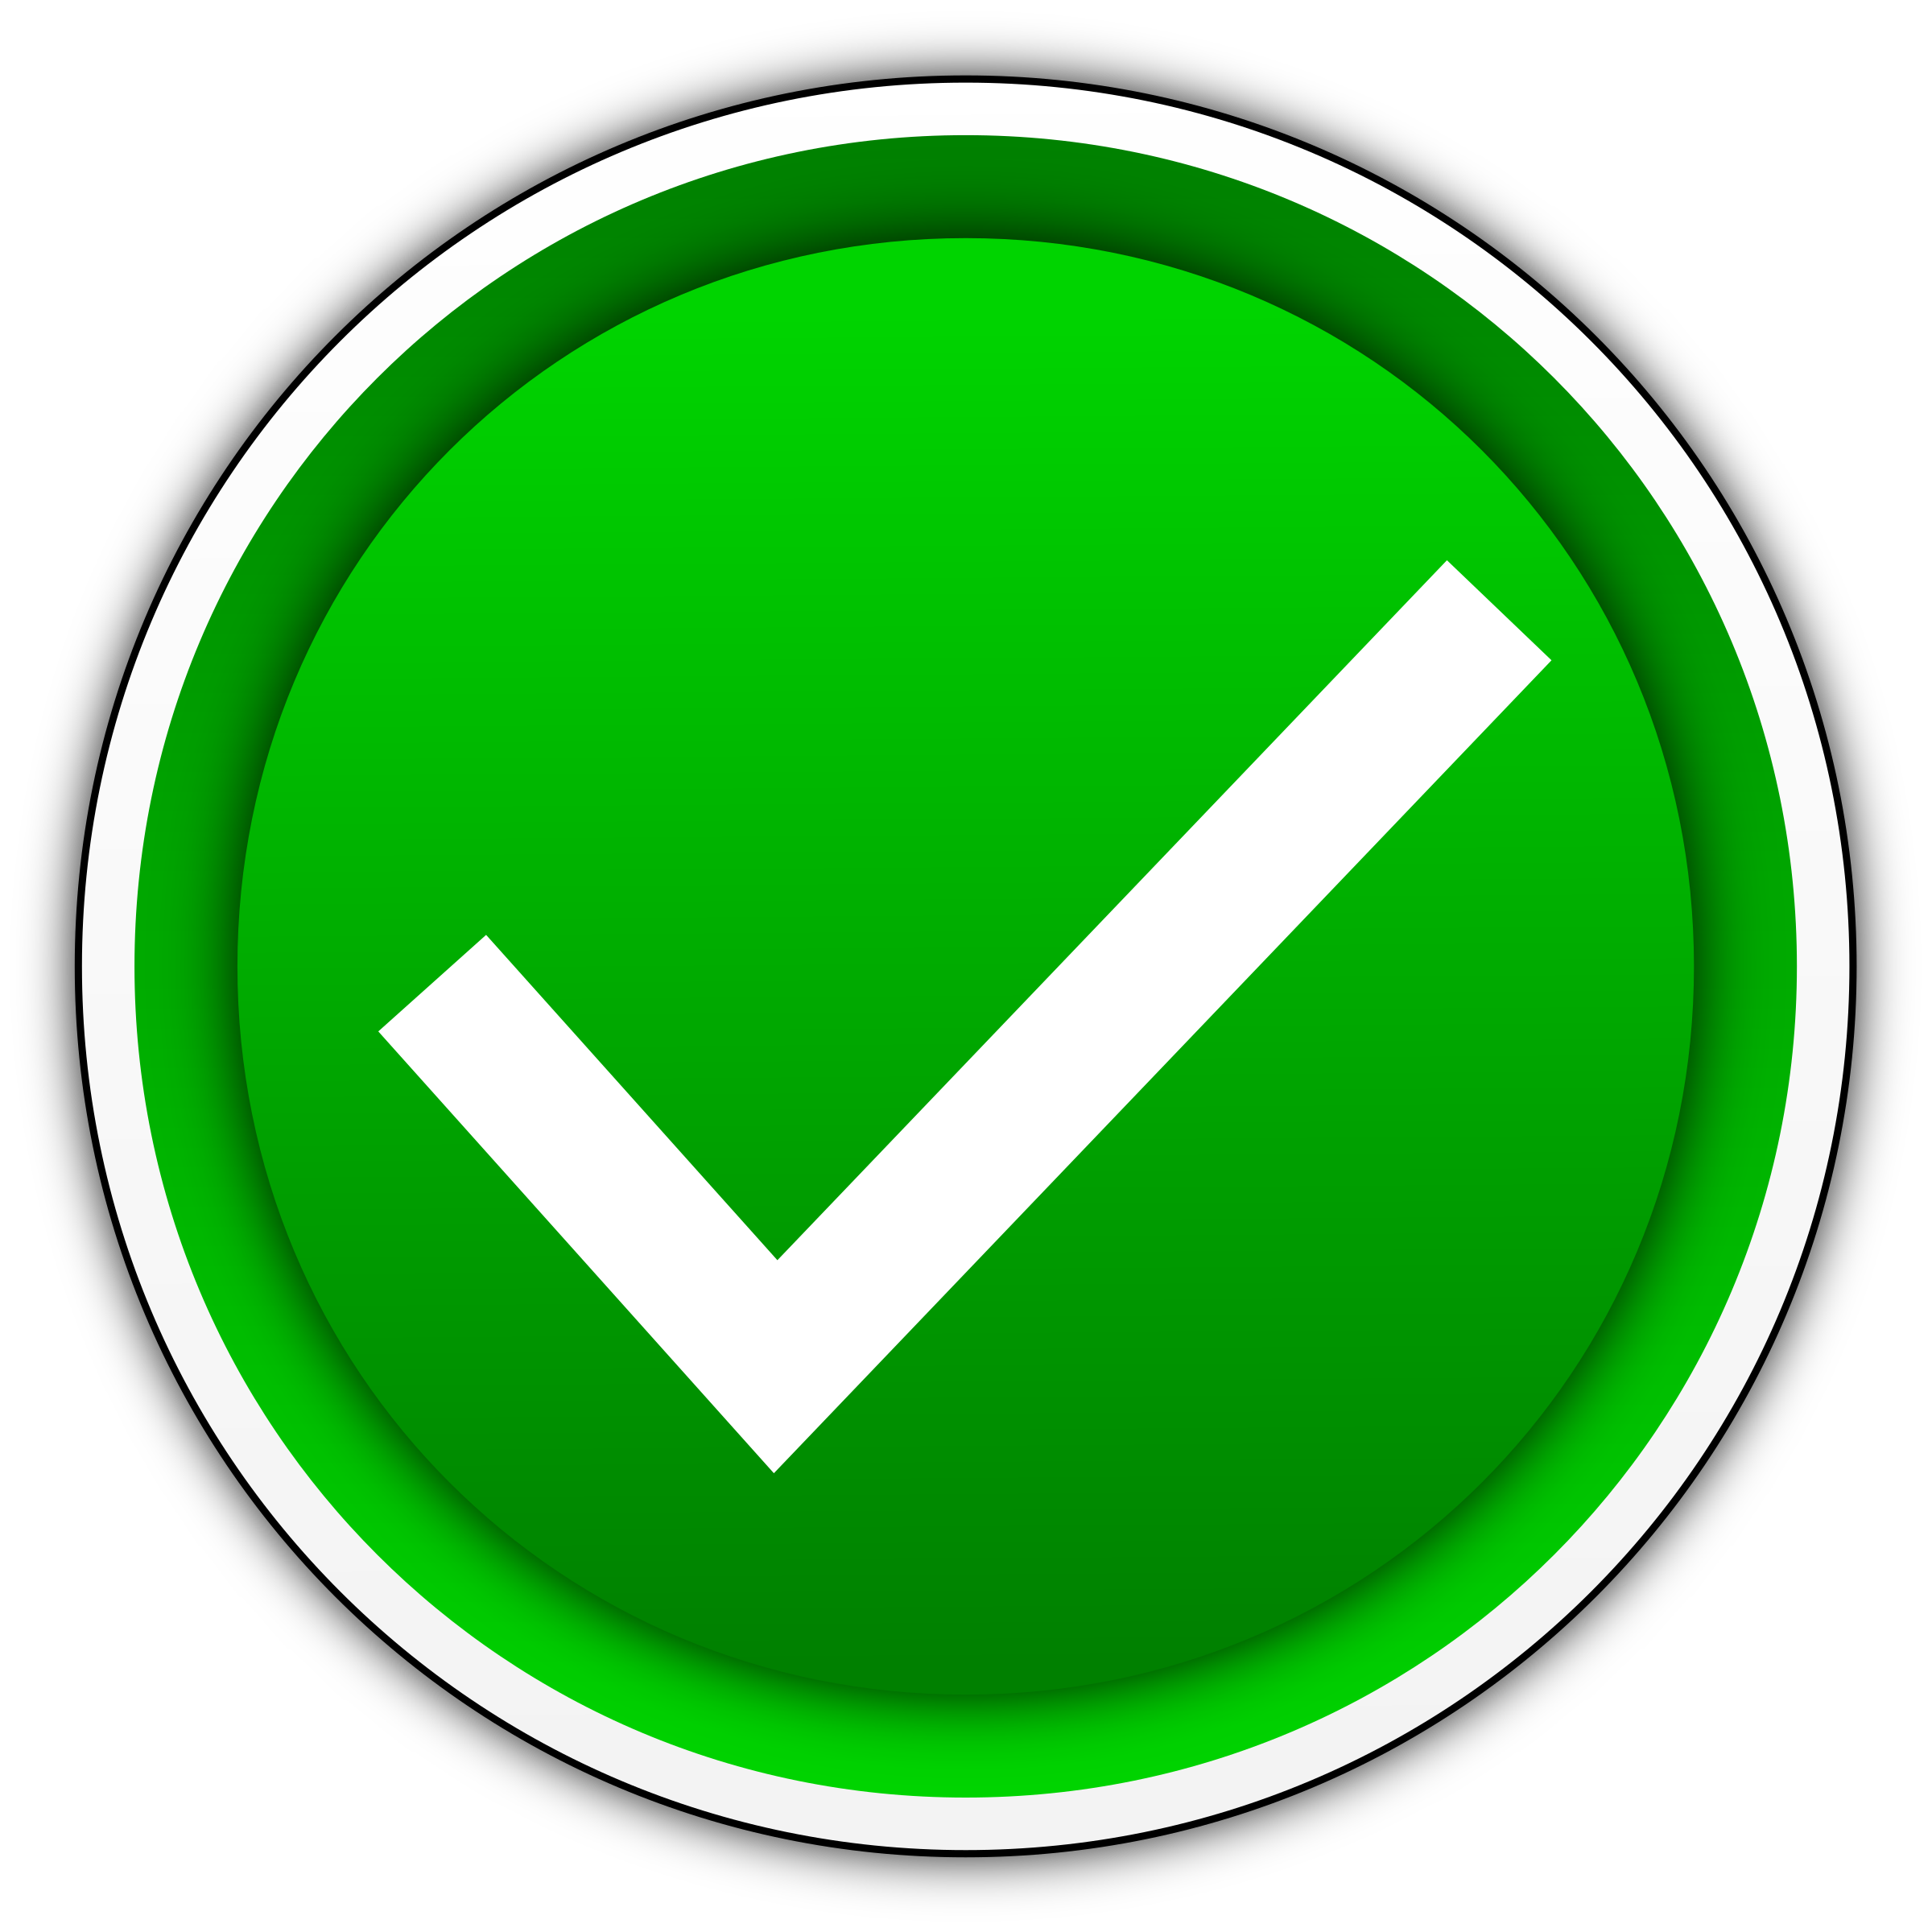 Green Yes Check Mark Png image #39564